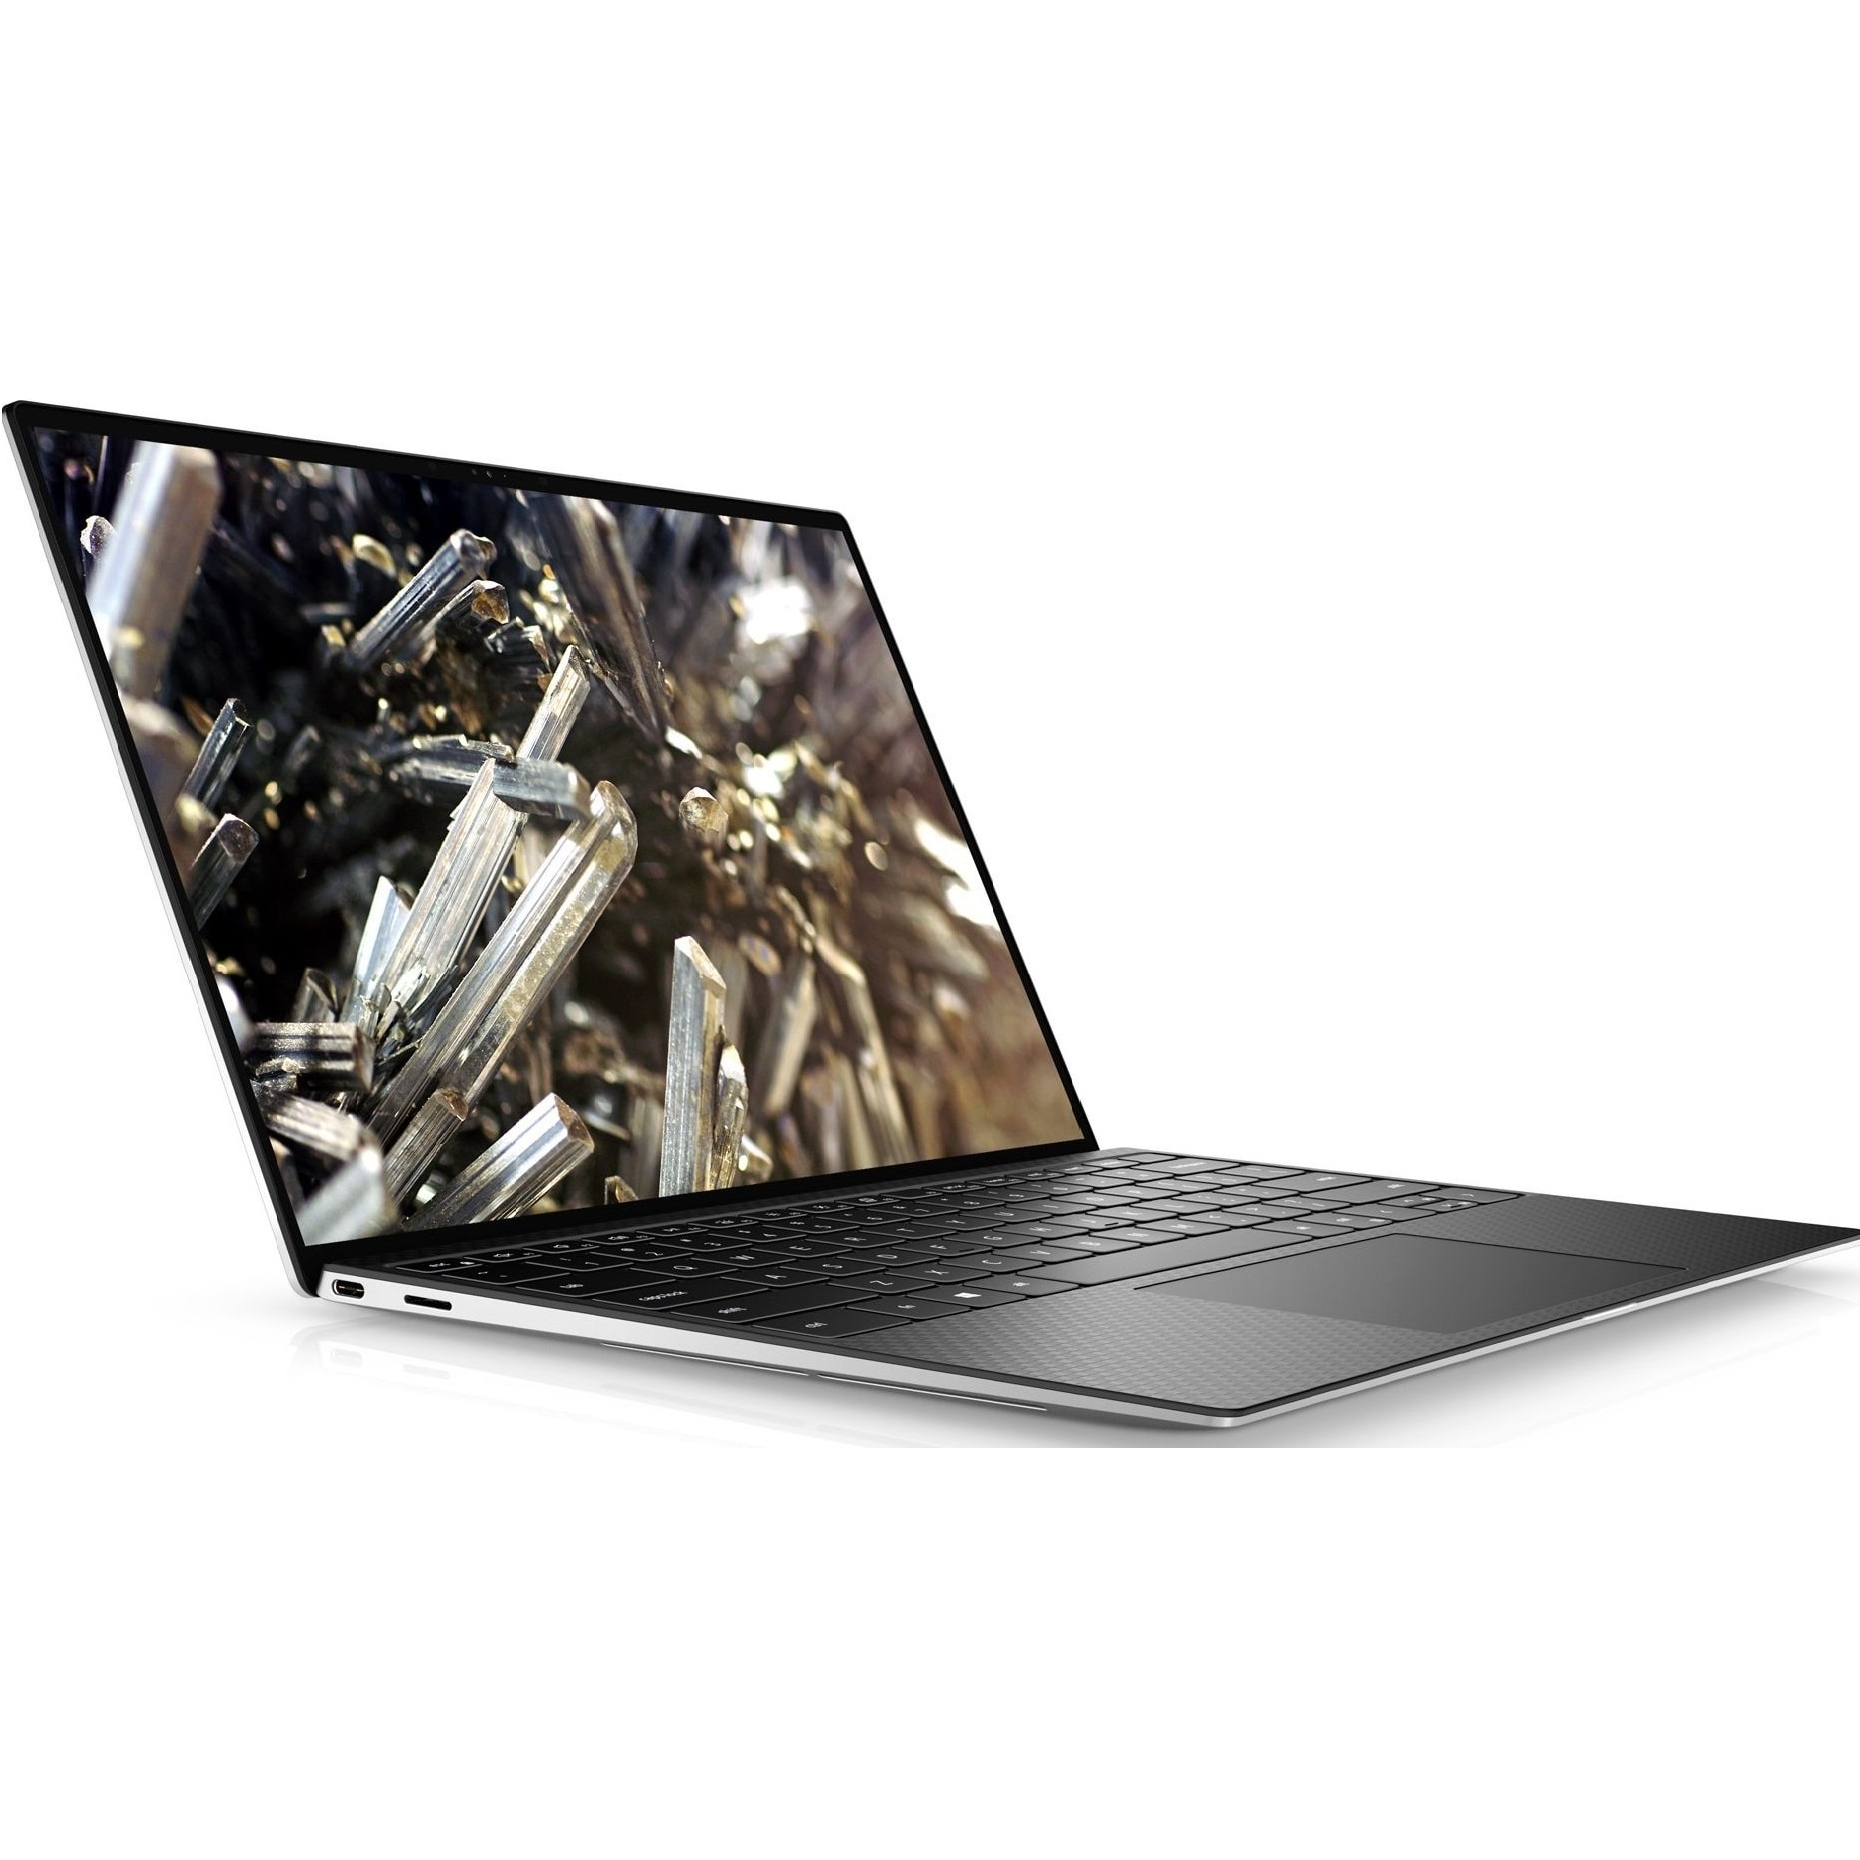 DELL XPS 13 9300 13.4 I7-1065G7 16GB 512GBSSD W10PRO X9300NB_i7TQ16512SW10Ps1PS_121